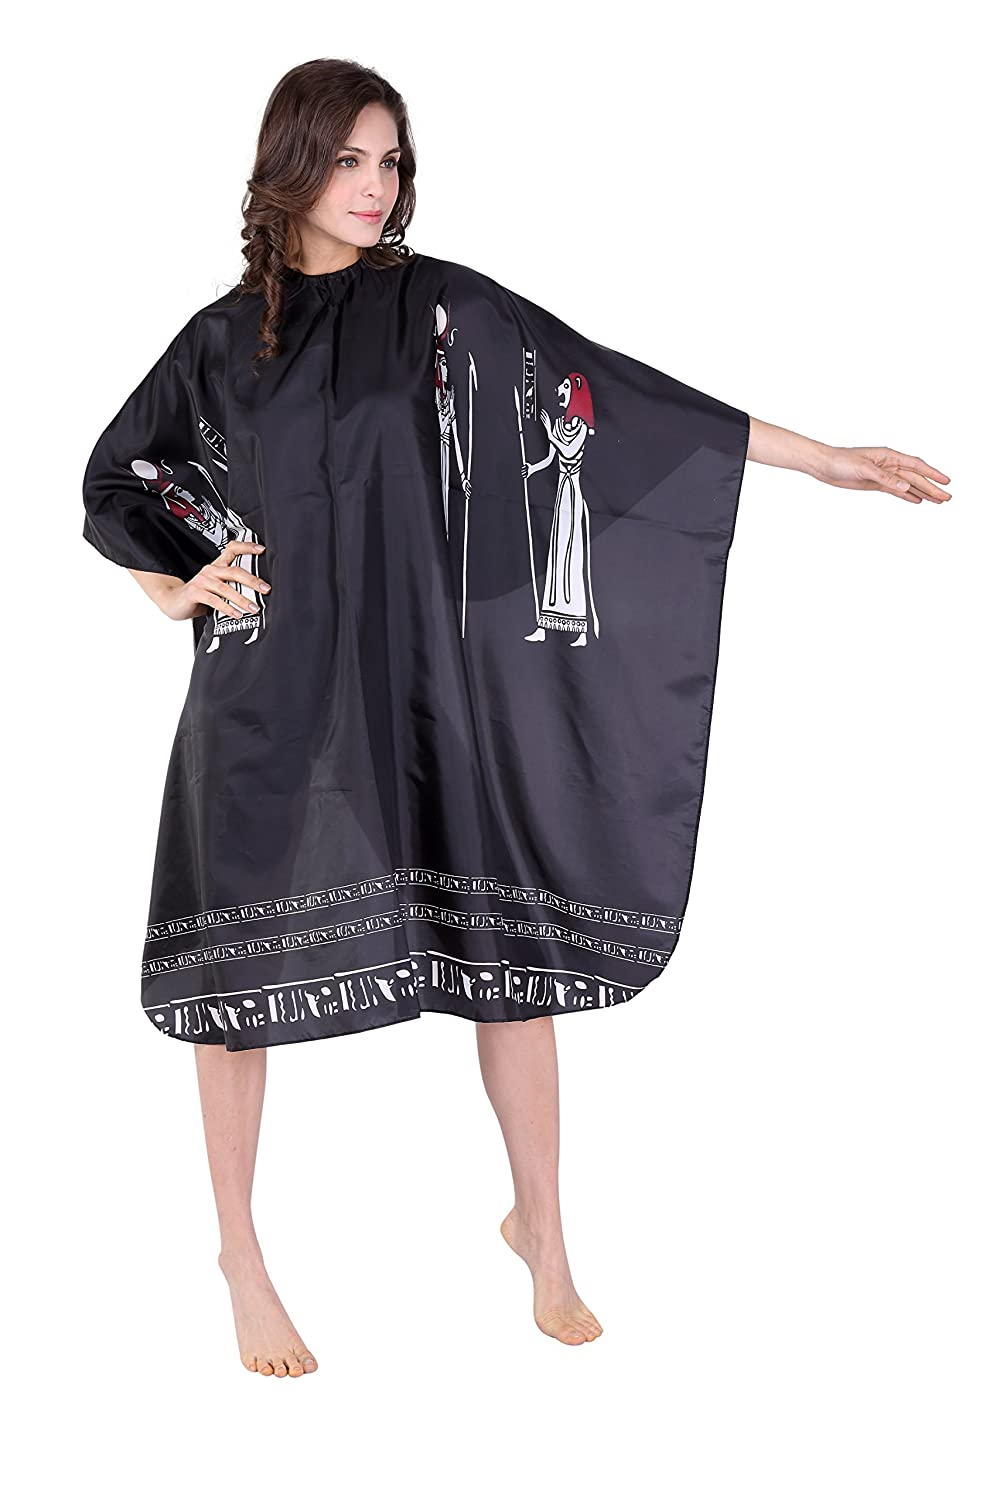 XMW Professional Water Repellent and Wipe Clean Egypt-Pattern Hair Salon Cape with Snaps, Black